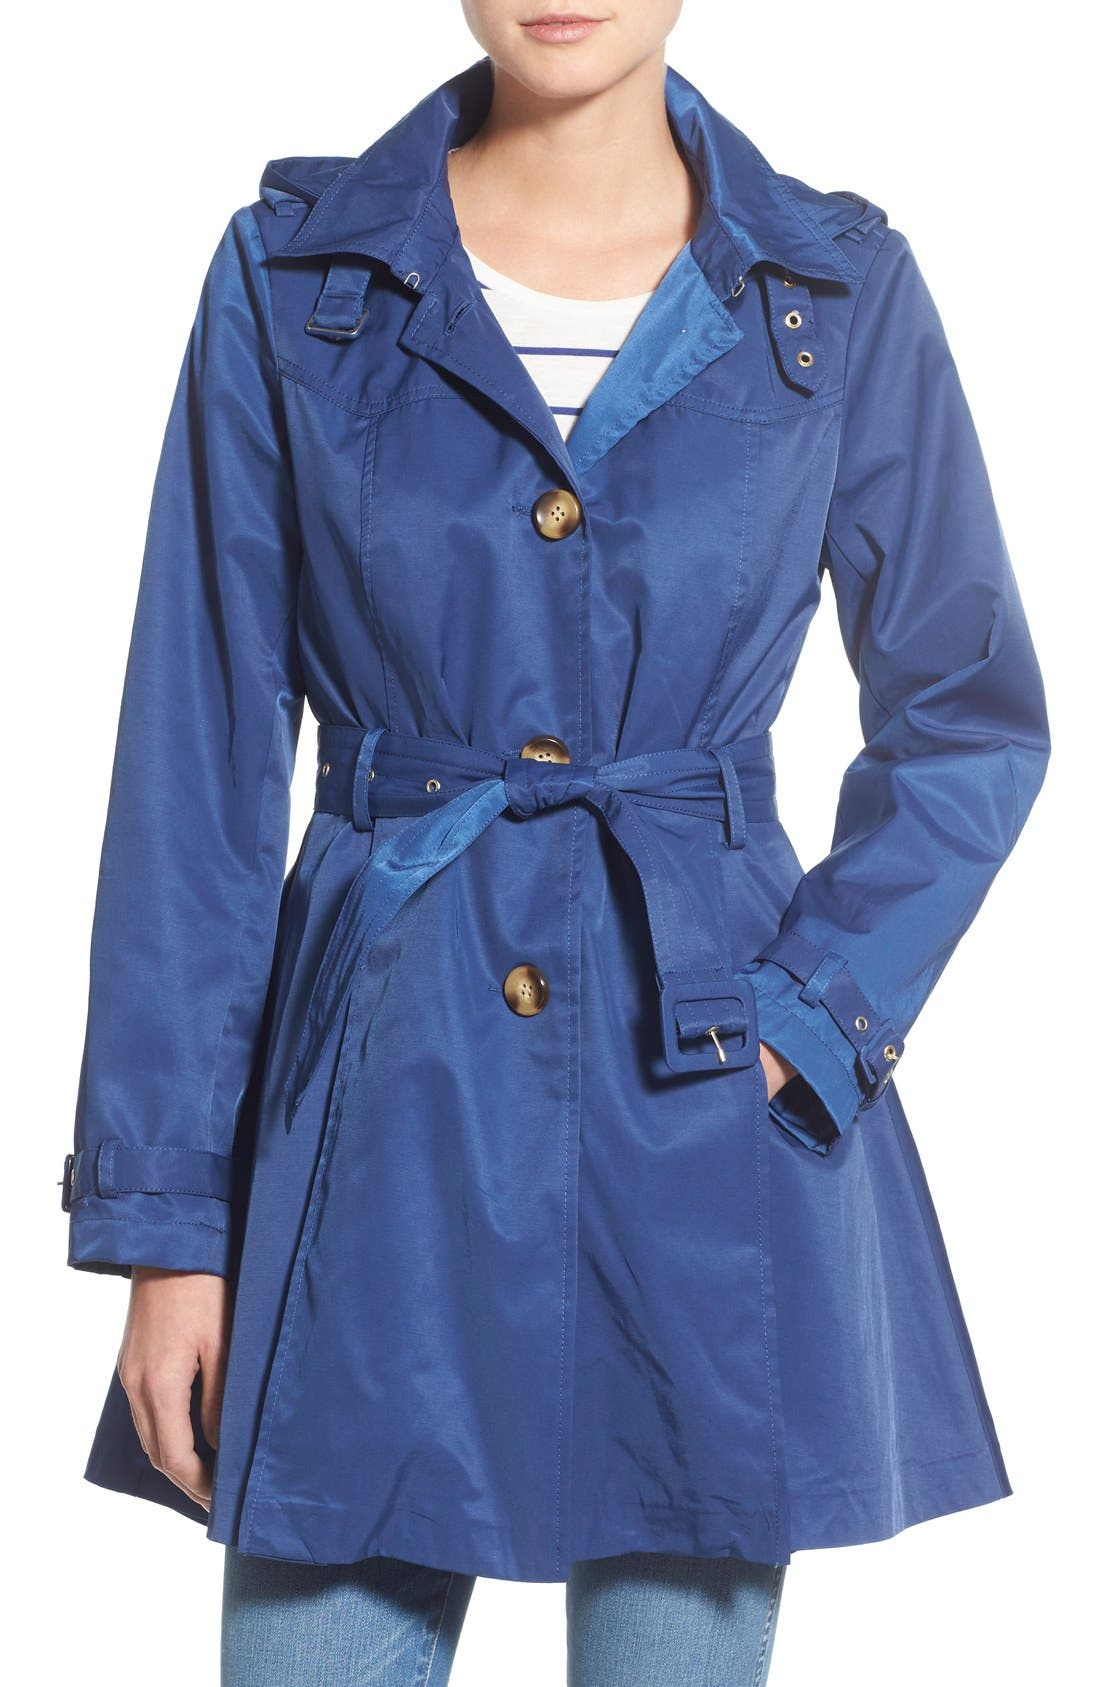 Alternate Image 1 Selected - Steve Madden Trench Coat with Detachable Hood